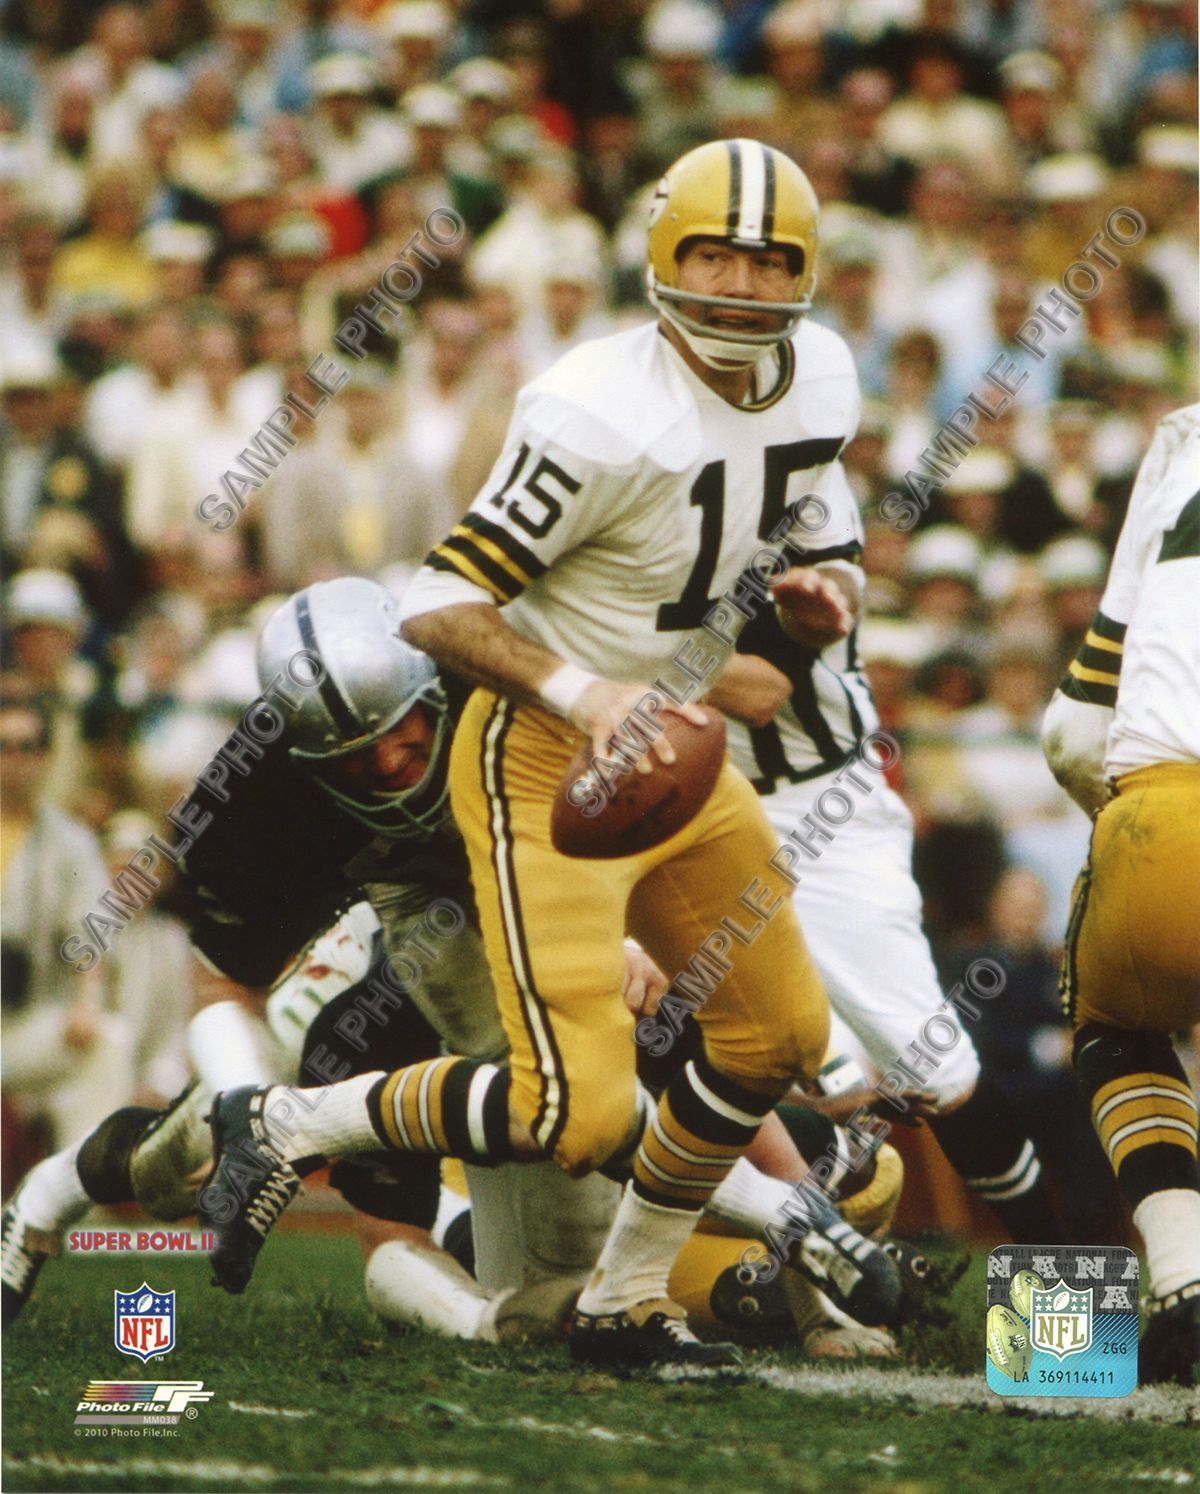 Bart Starr Super Bowl Ii 1968 Green Bay Packers Licensed 8x10 Action Photo Ebay Collectibles Bart Starr Green Bay Packers Green Bay